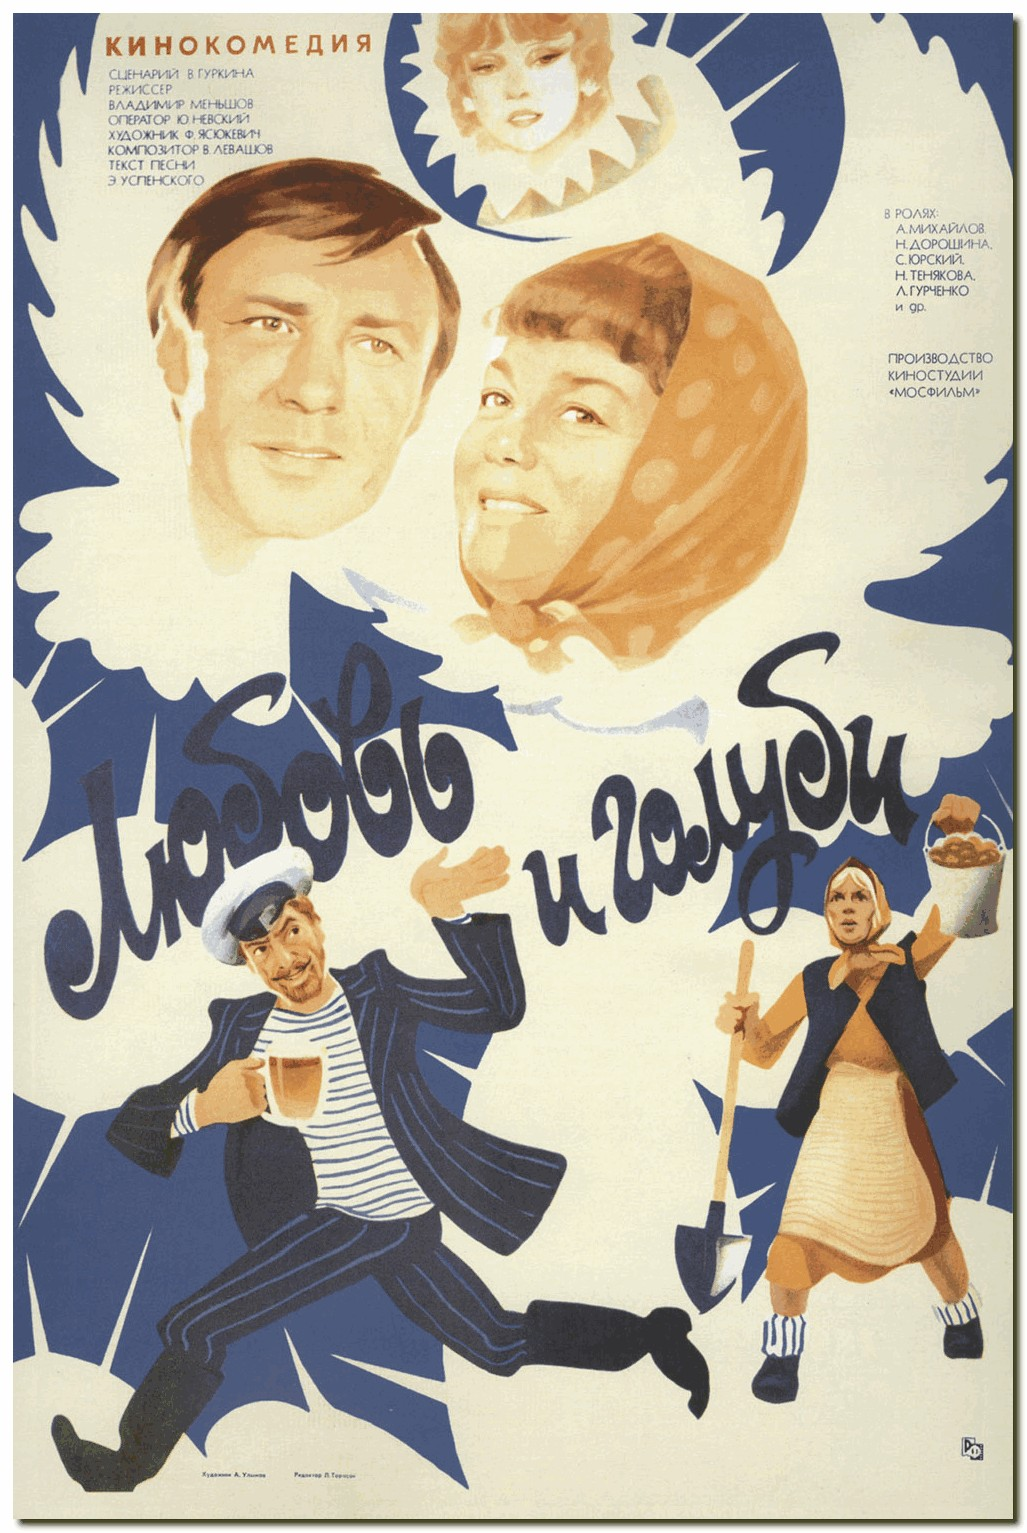 http://www.webcity.su/images/img/the-best-soviet-movies-top-10-5.jpg